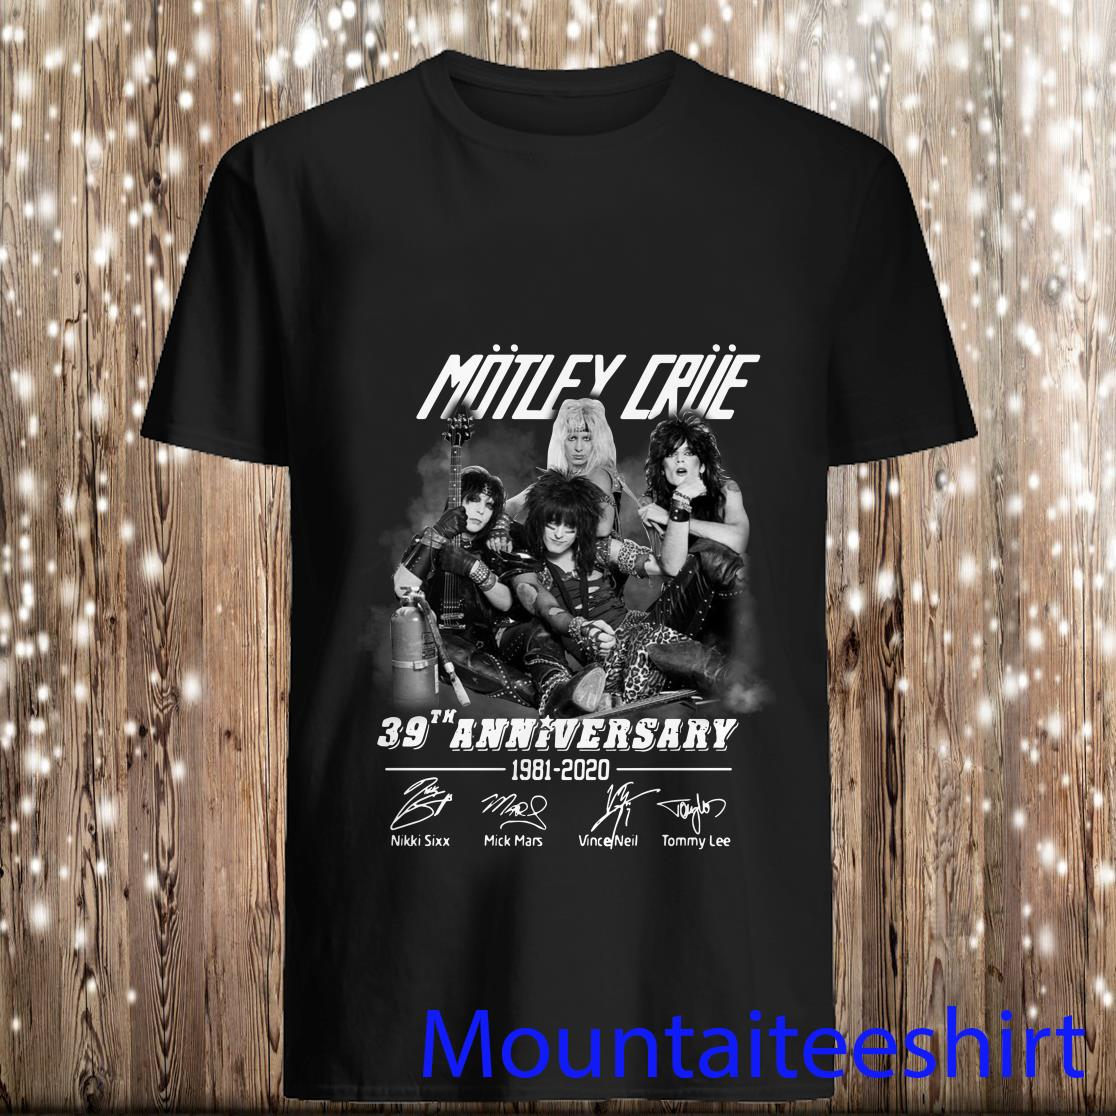 Motley Crue 39th Anniversary 1981-2020 Signatures Shirt